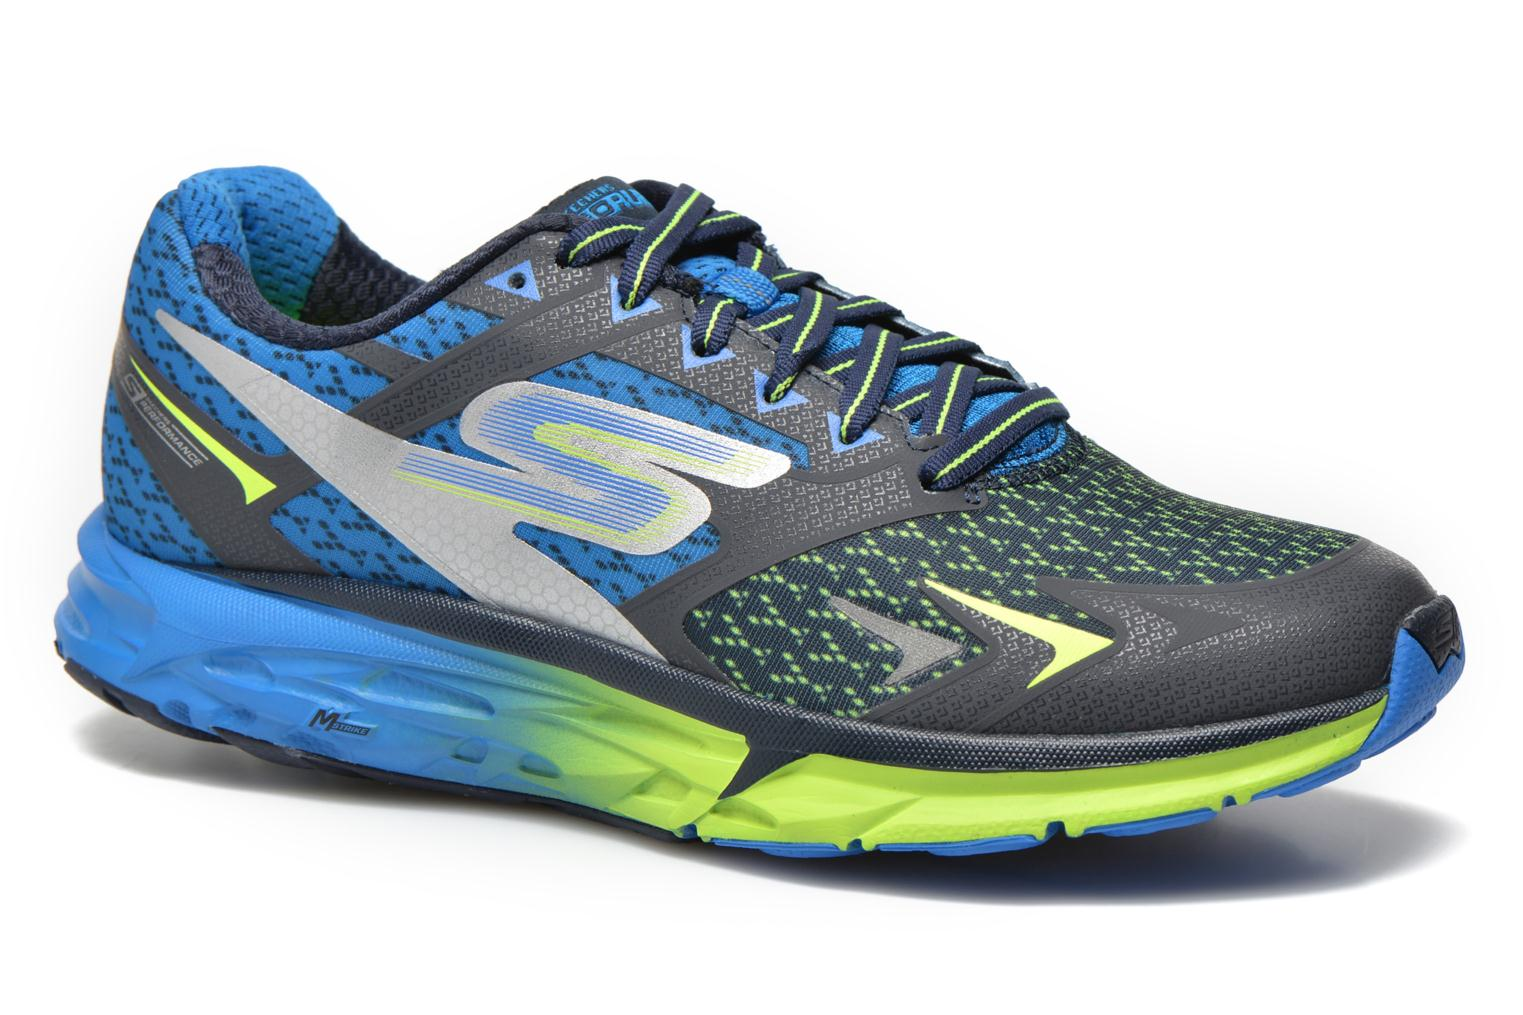 Go Run Forza 54105 by SkechersRebajas - 37%